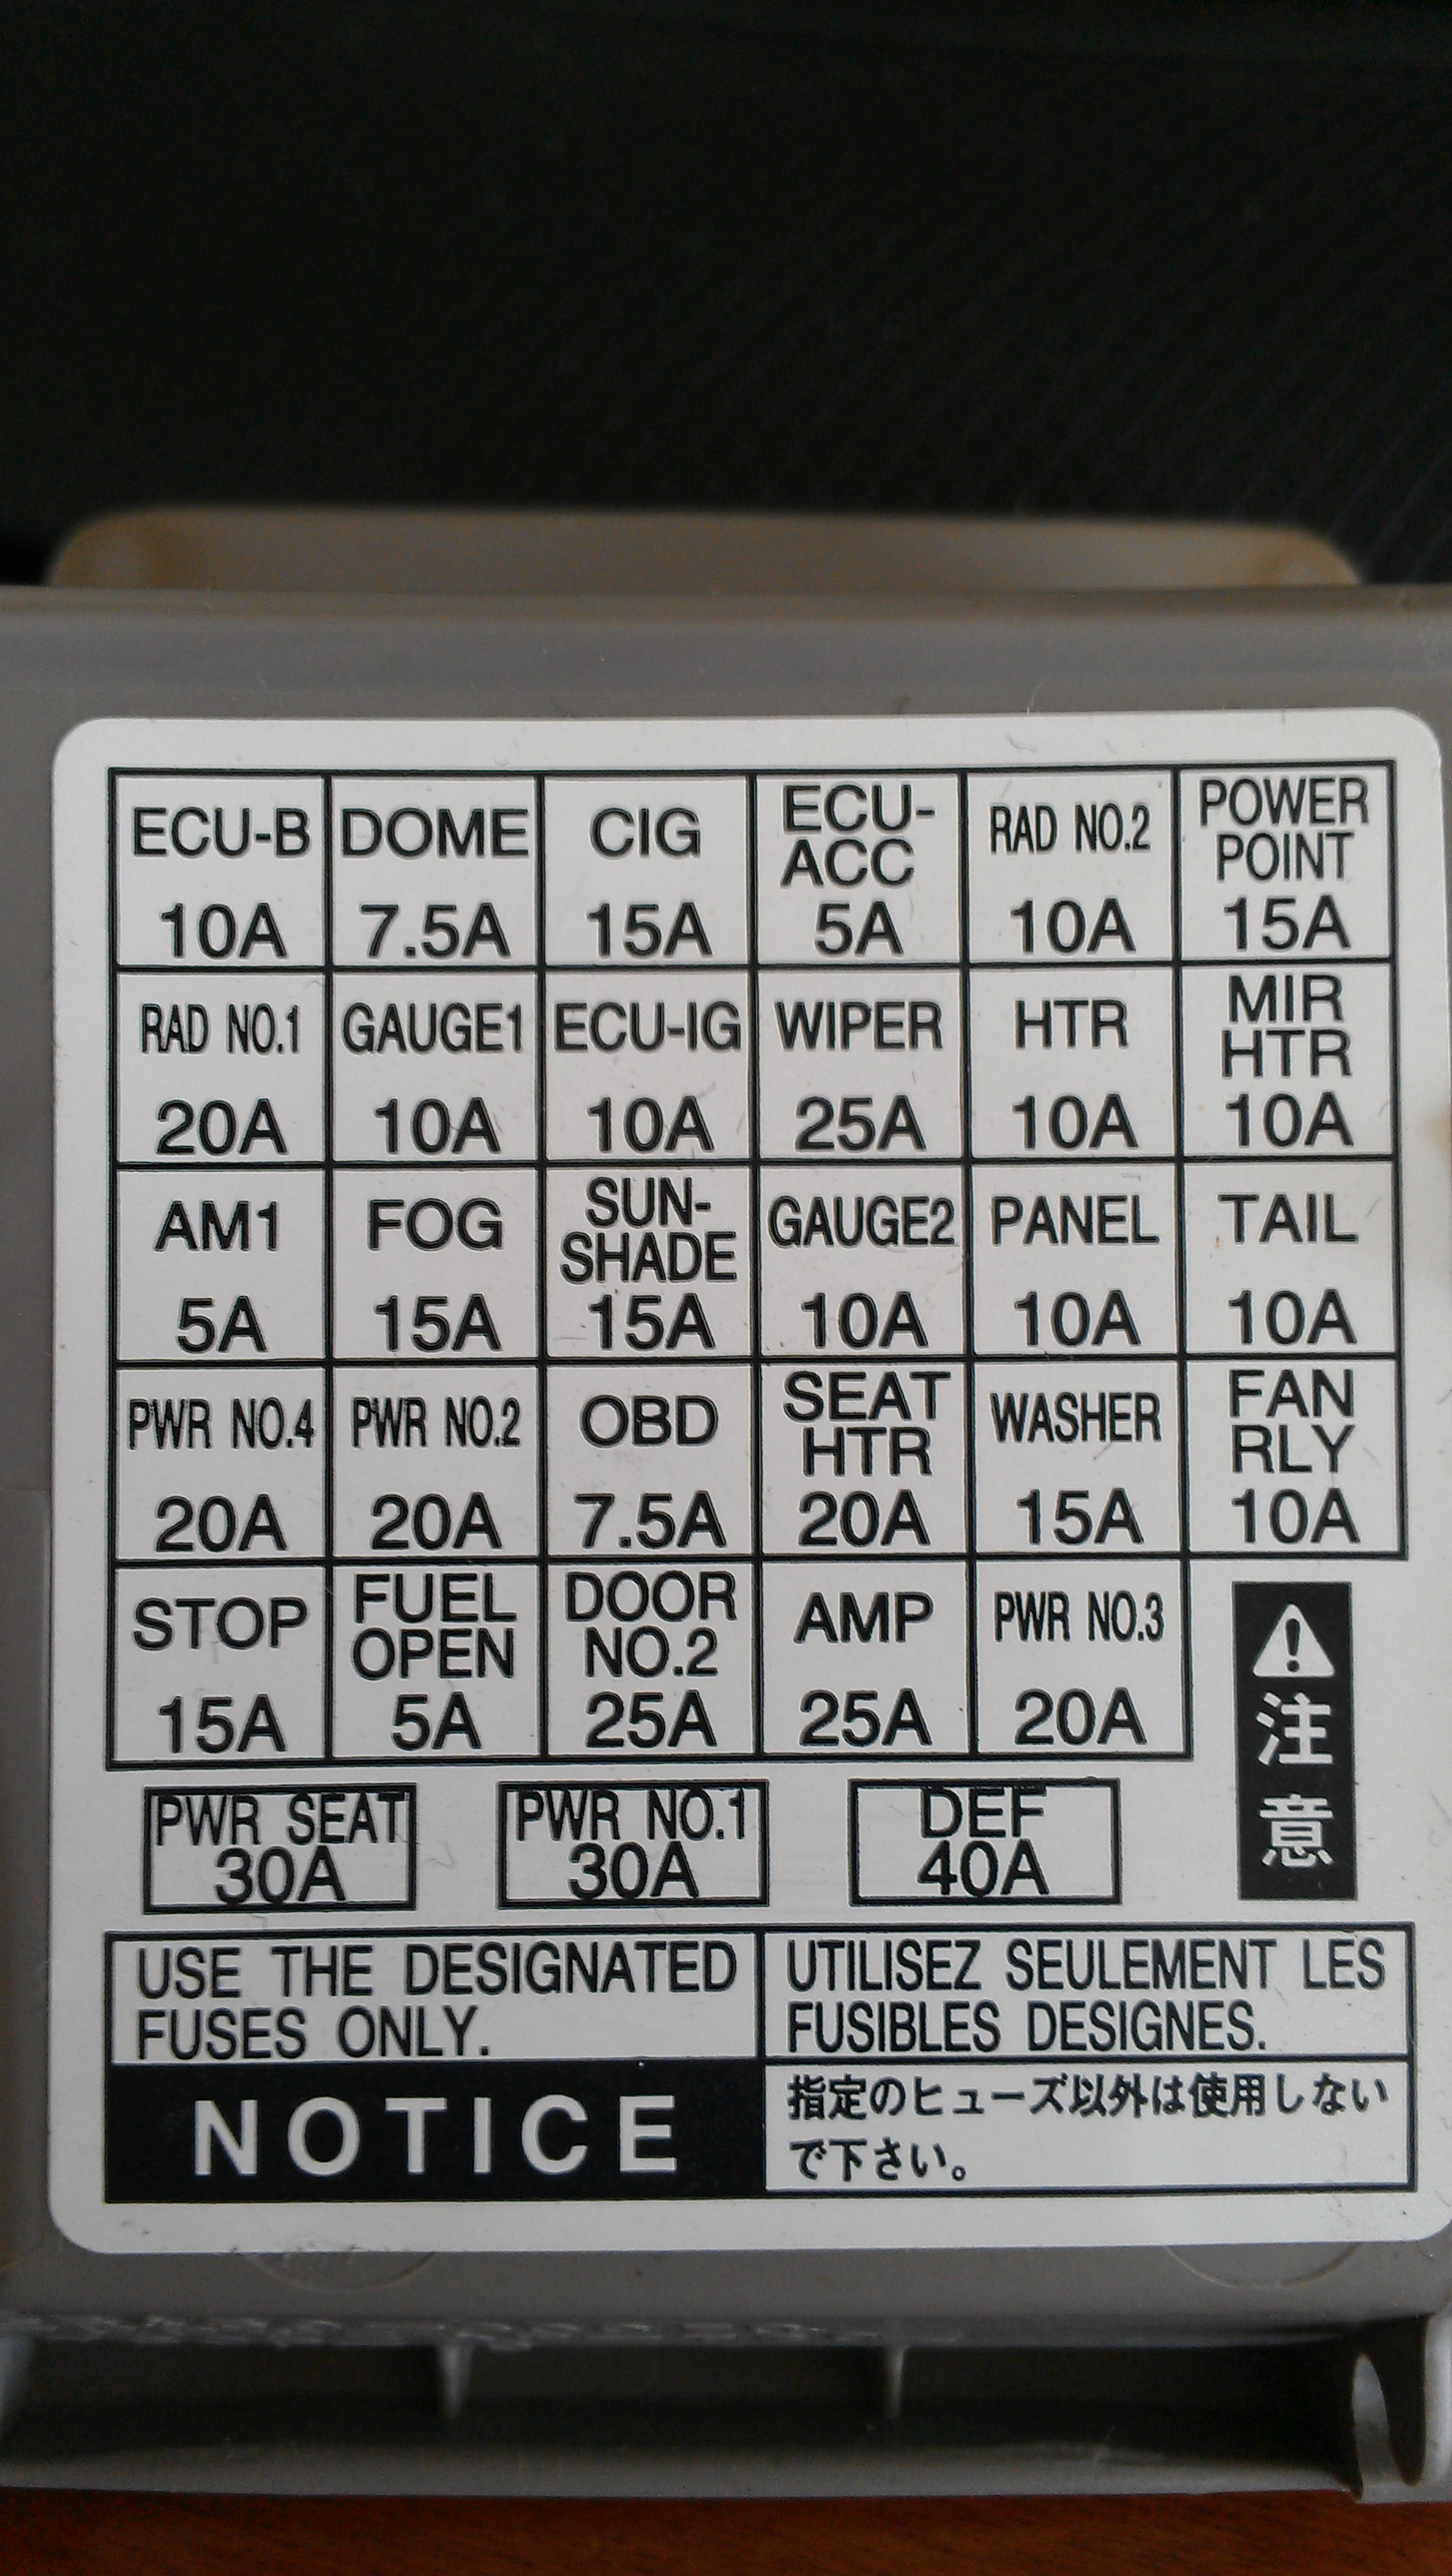 Wiring Diagram Also 1998 Lexus Gs300 Light Diagram On Wiring Diagram